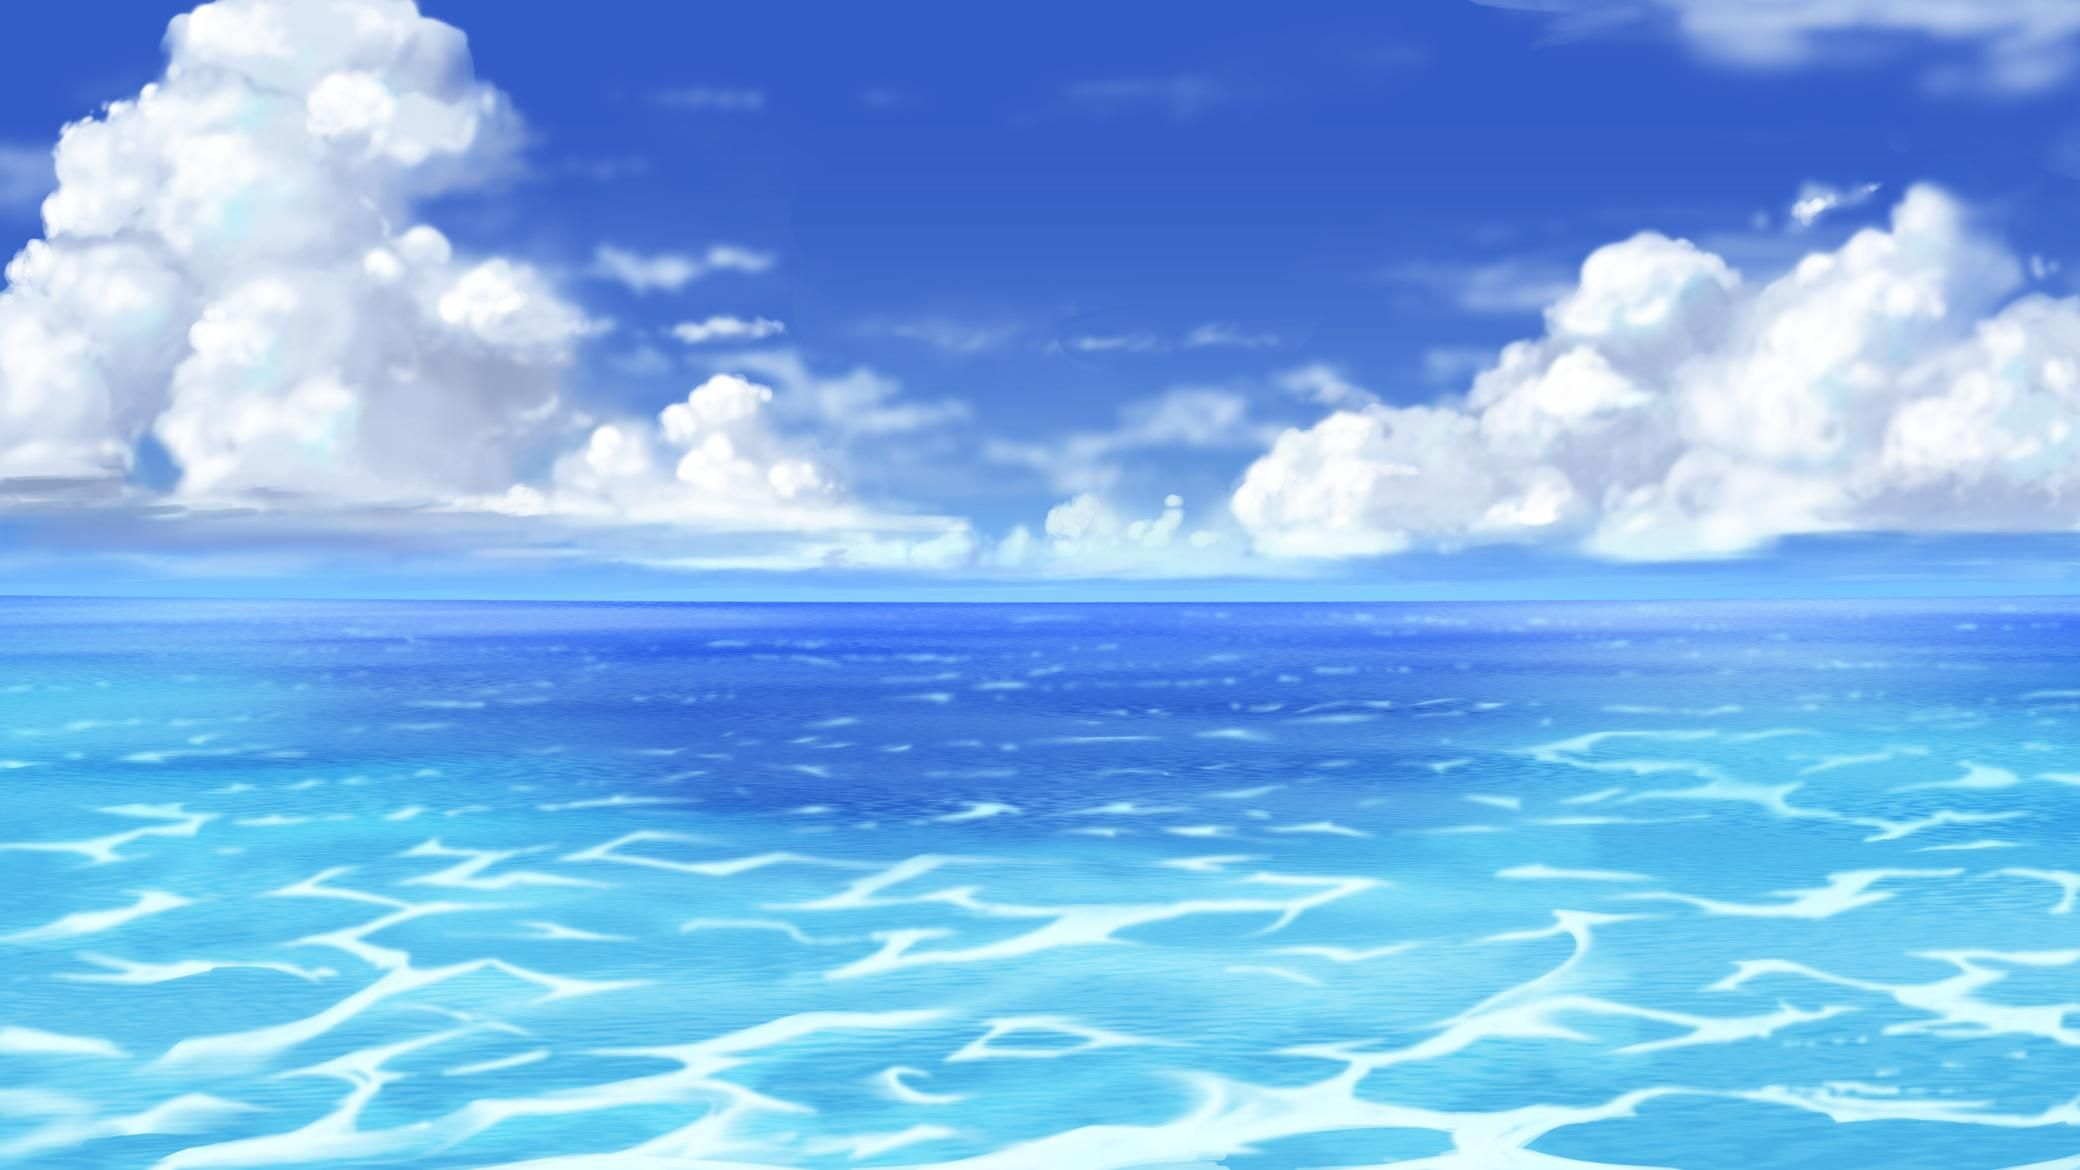 Summer Anime Scenery Wallpaper Anime Scenery Wallpaper Anime Scenery Anime Background